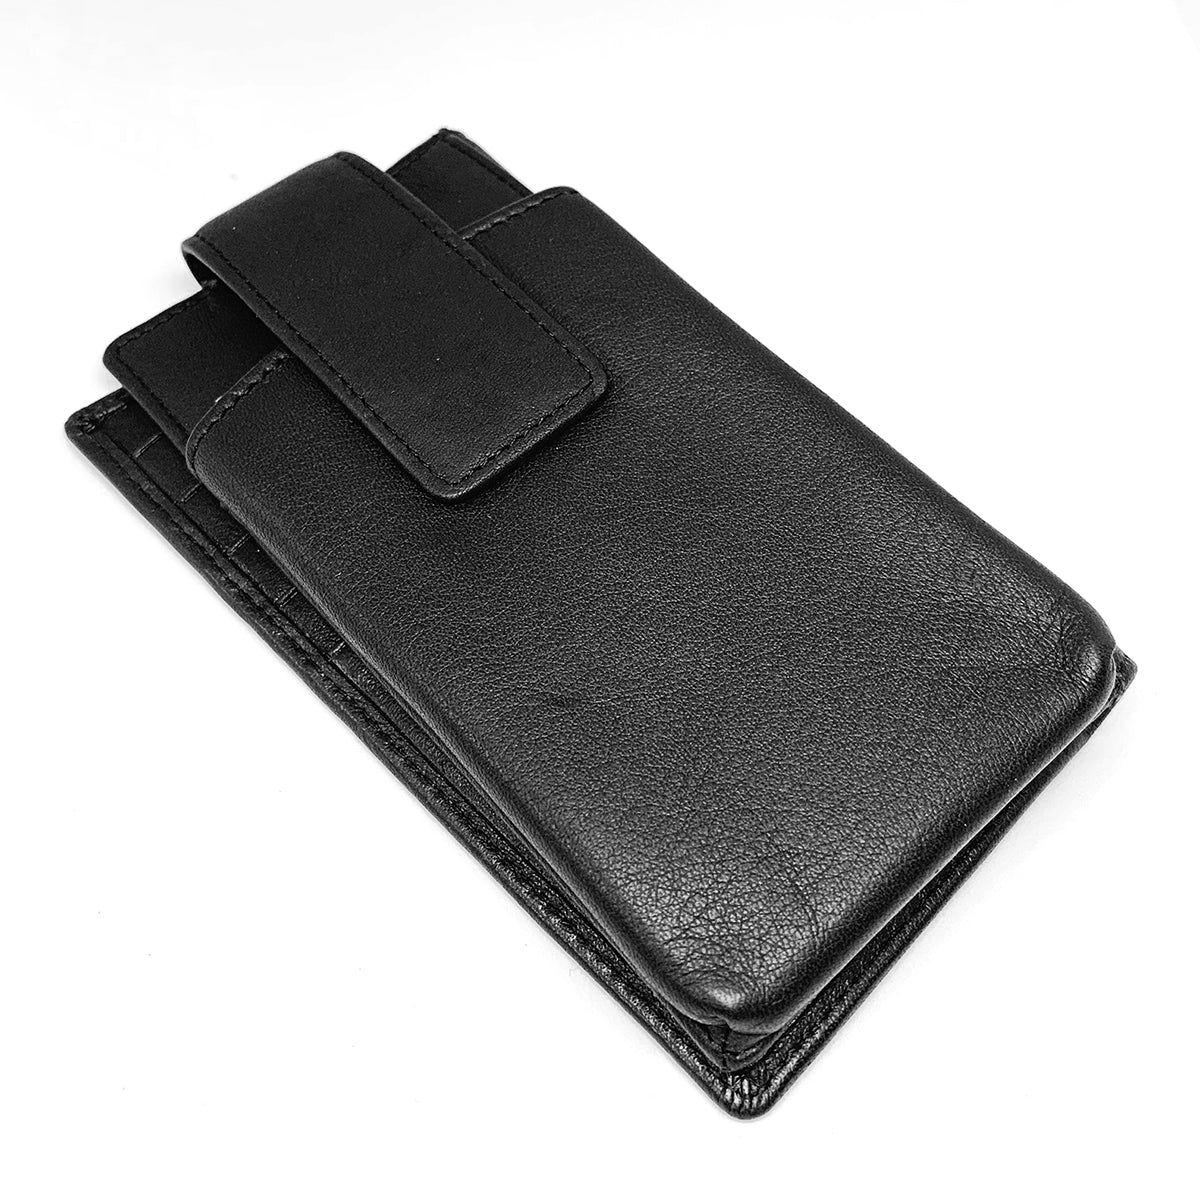 Cellphone Wallet/Case